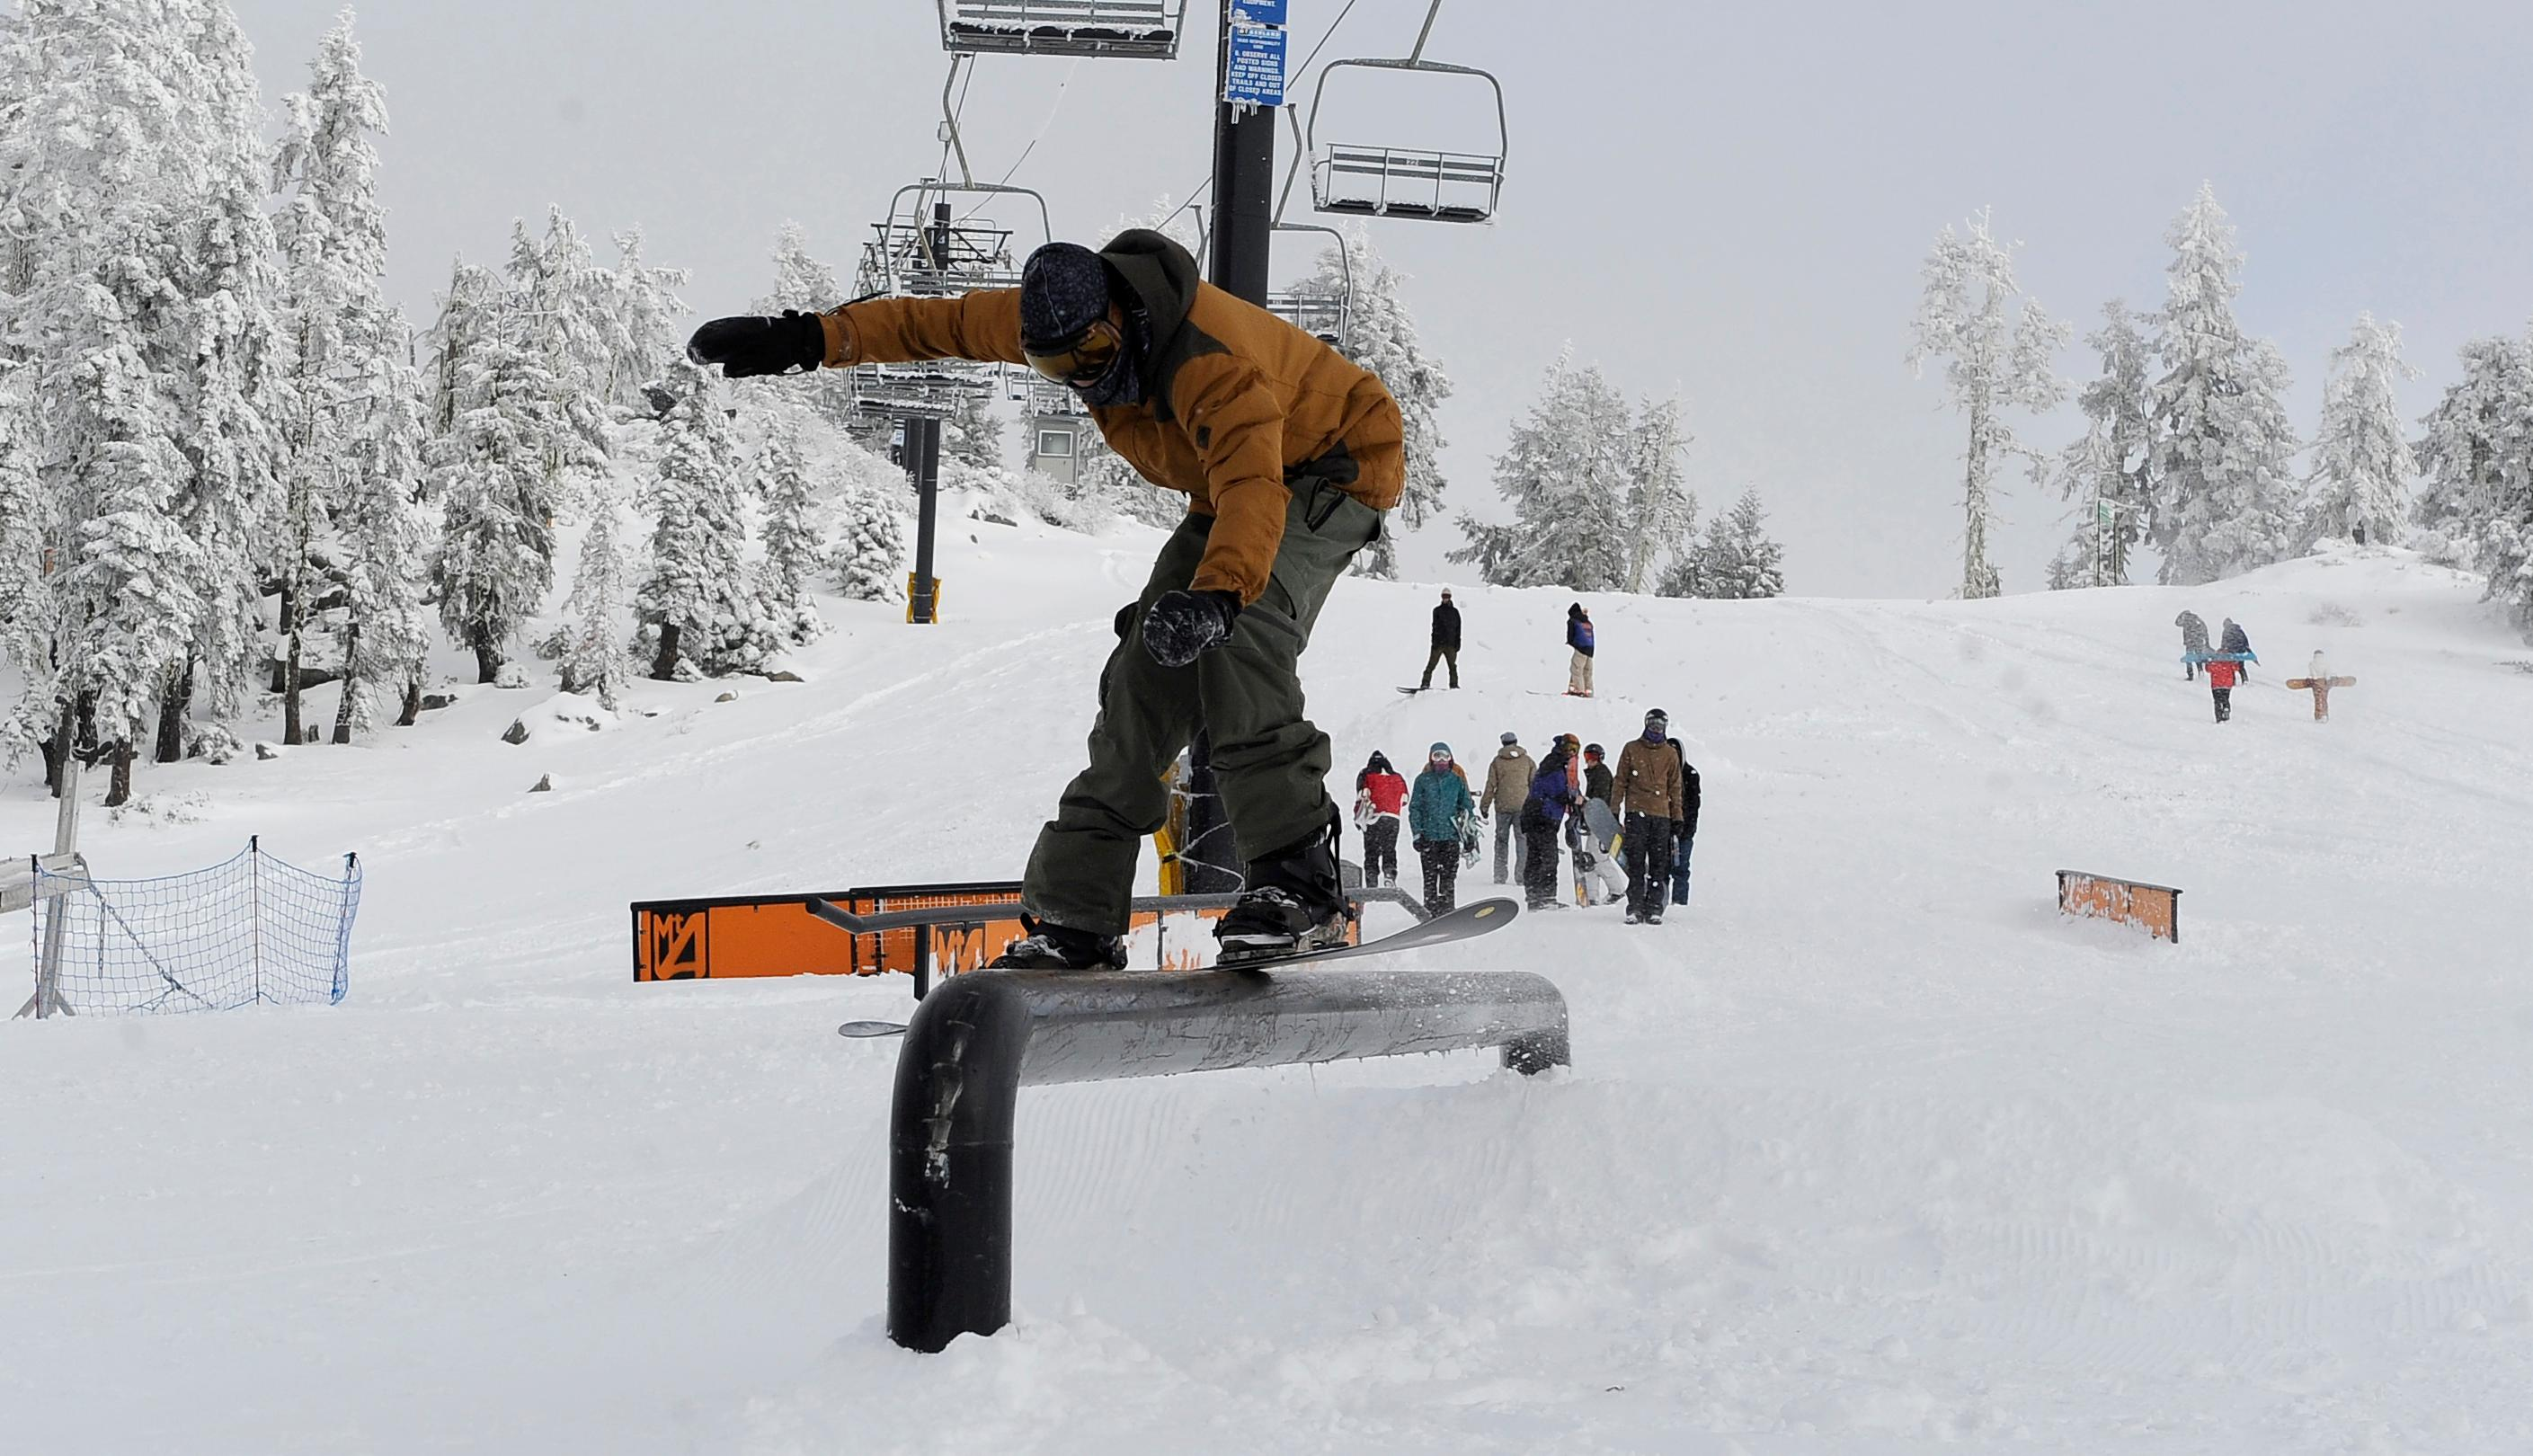 Andy Atkinson / Mail Tribune <br><p>A snowboarder rides a rail during Mt. Ashland's Snow Stomp Saturday afternoon.</p>